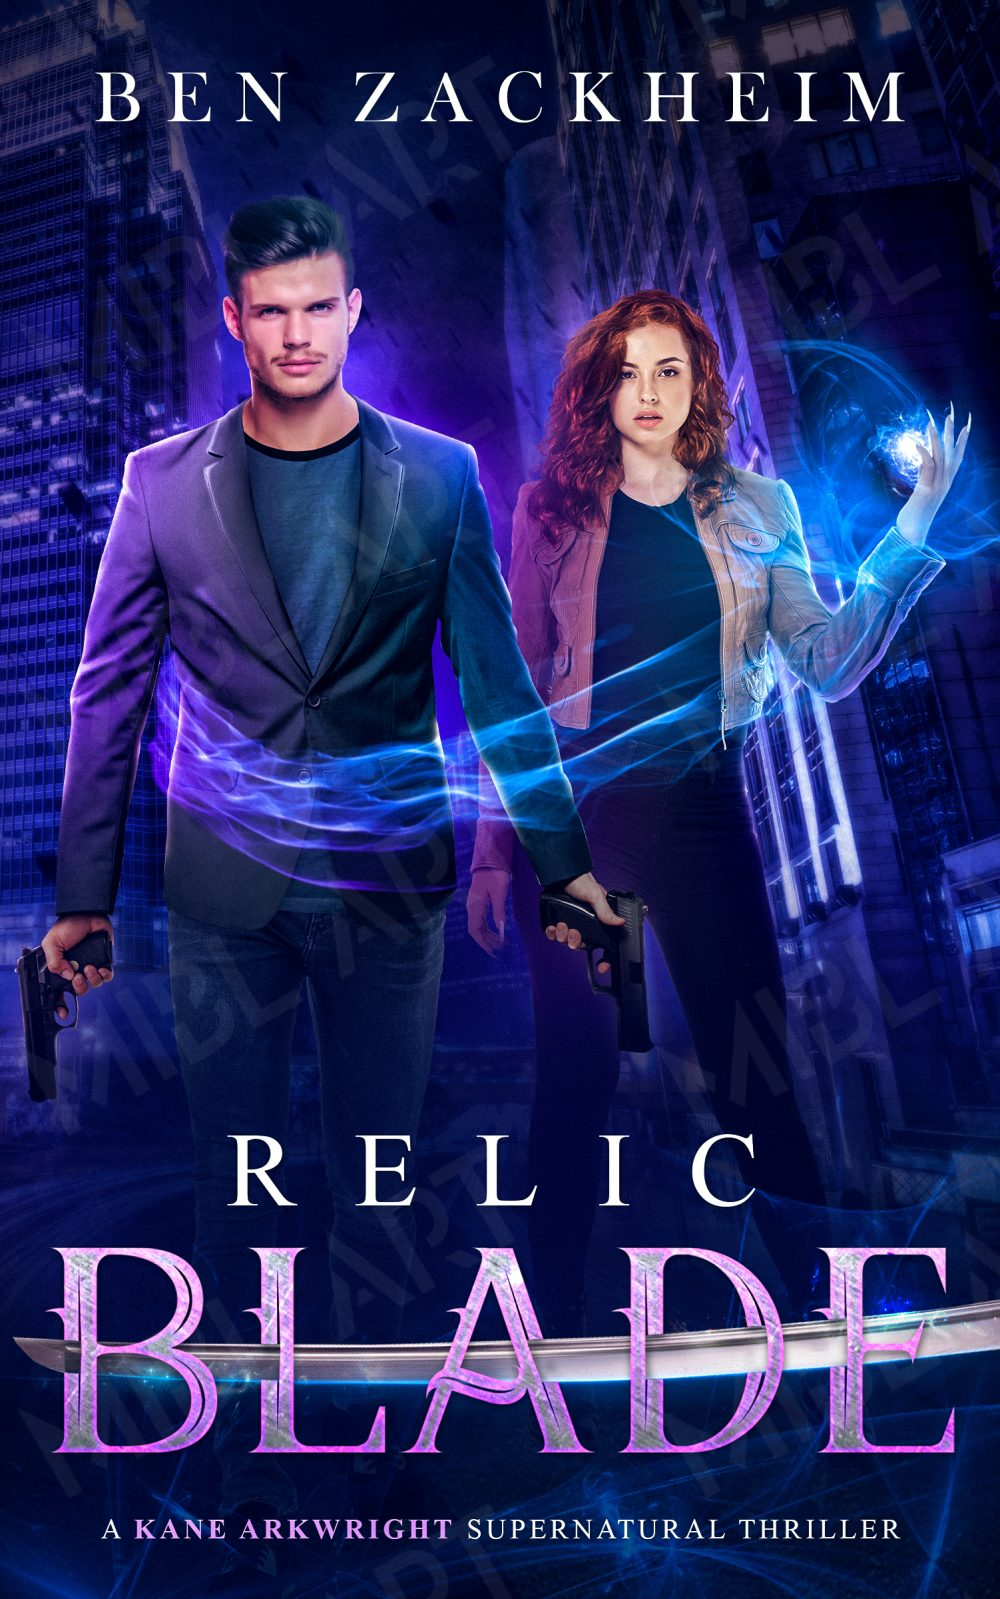 Image of cover to Relic Spear ebook in the supernatural thriller series on Amazon